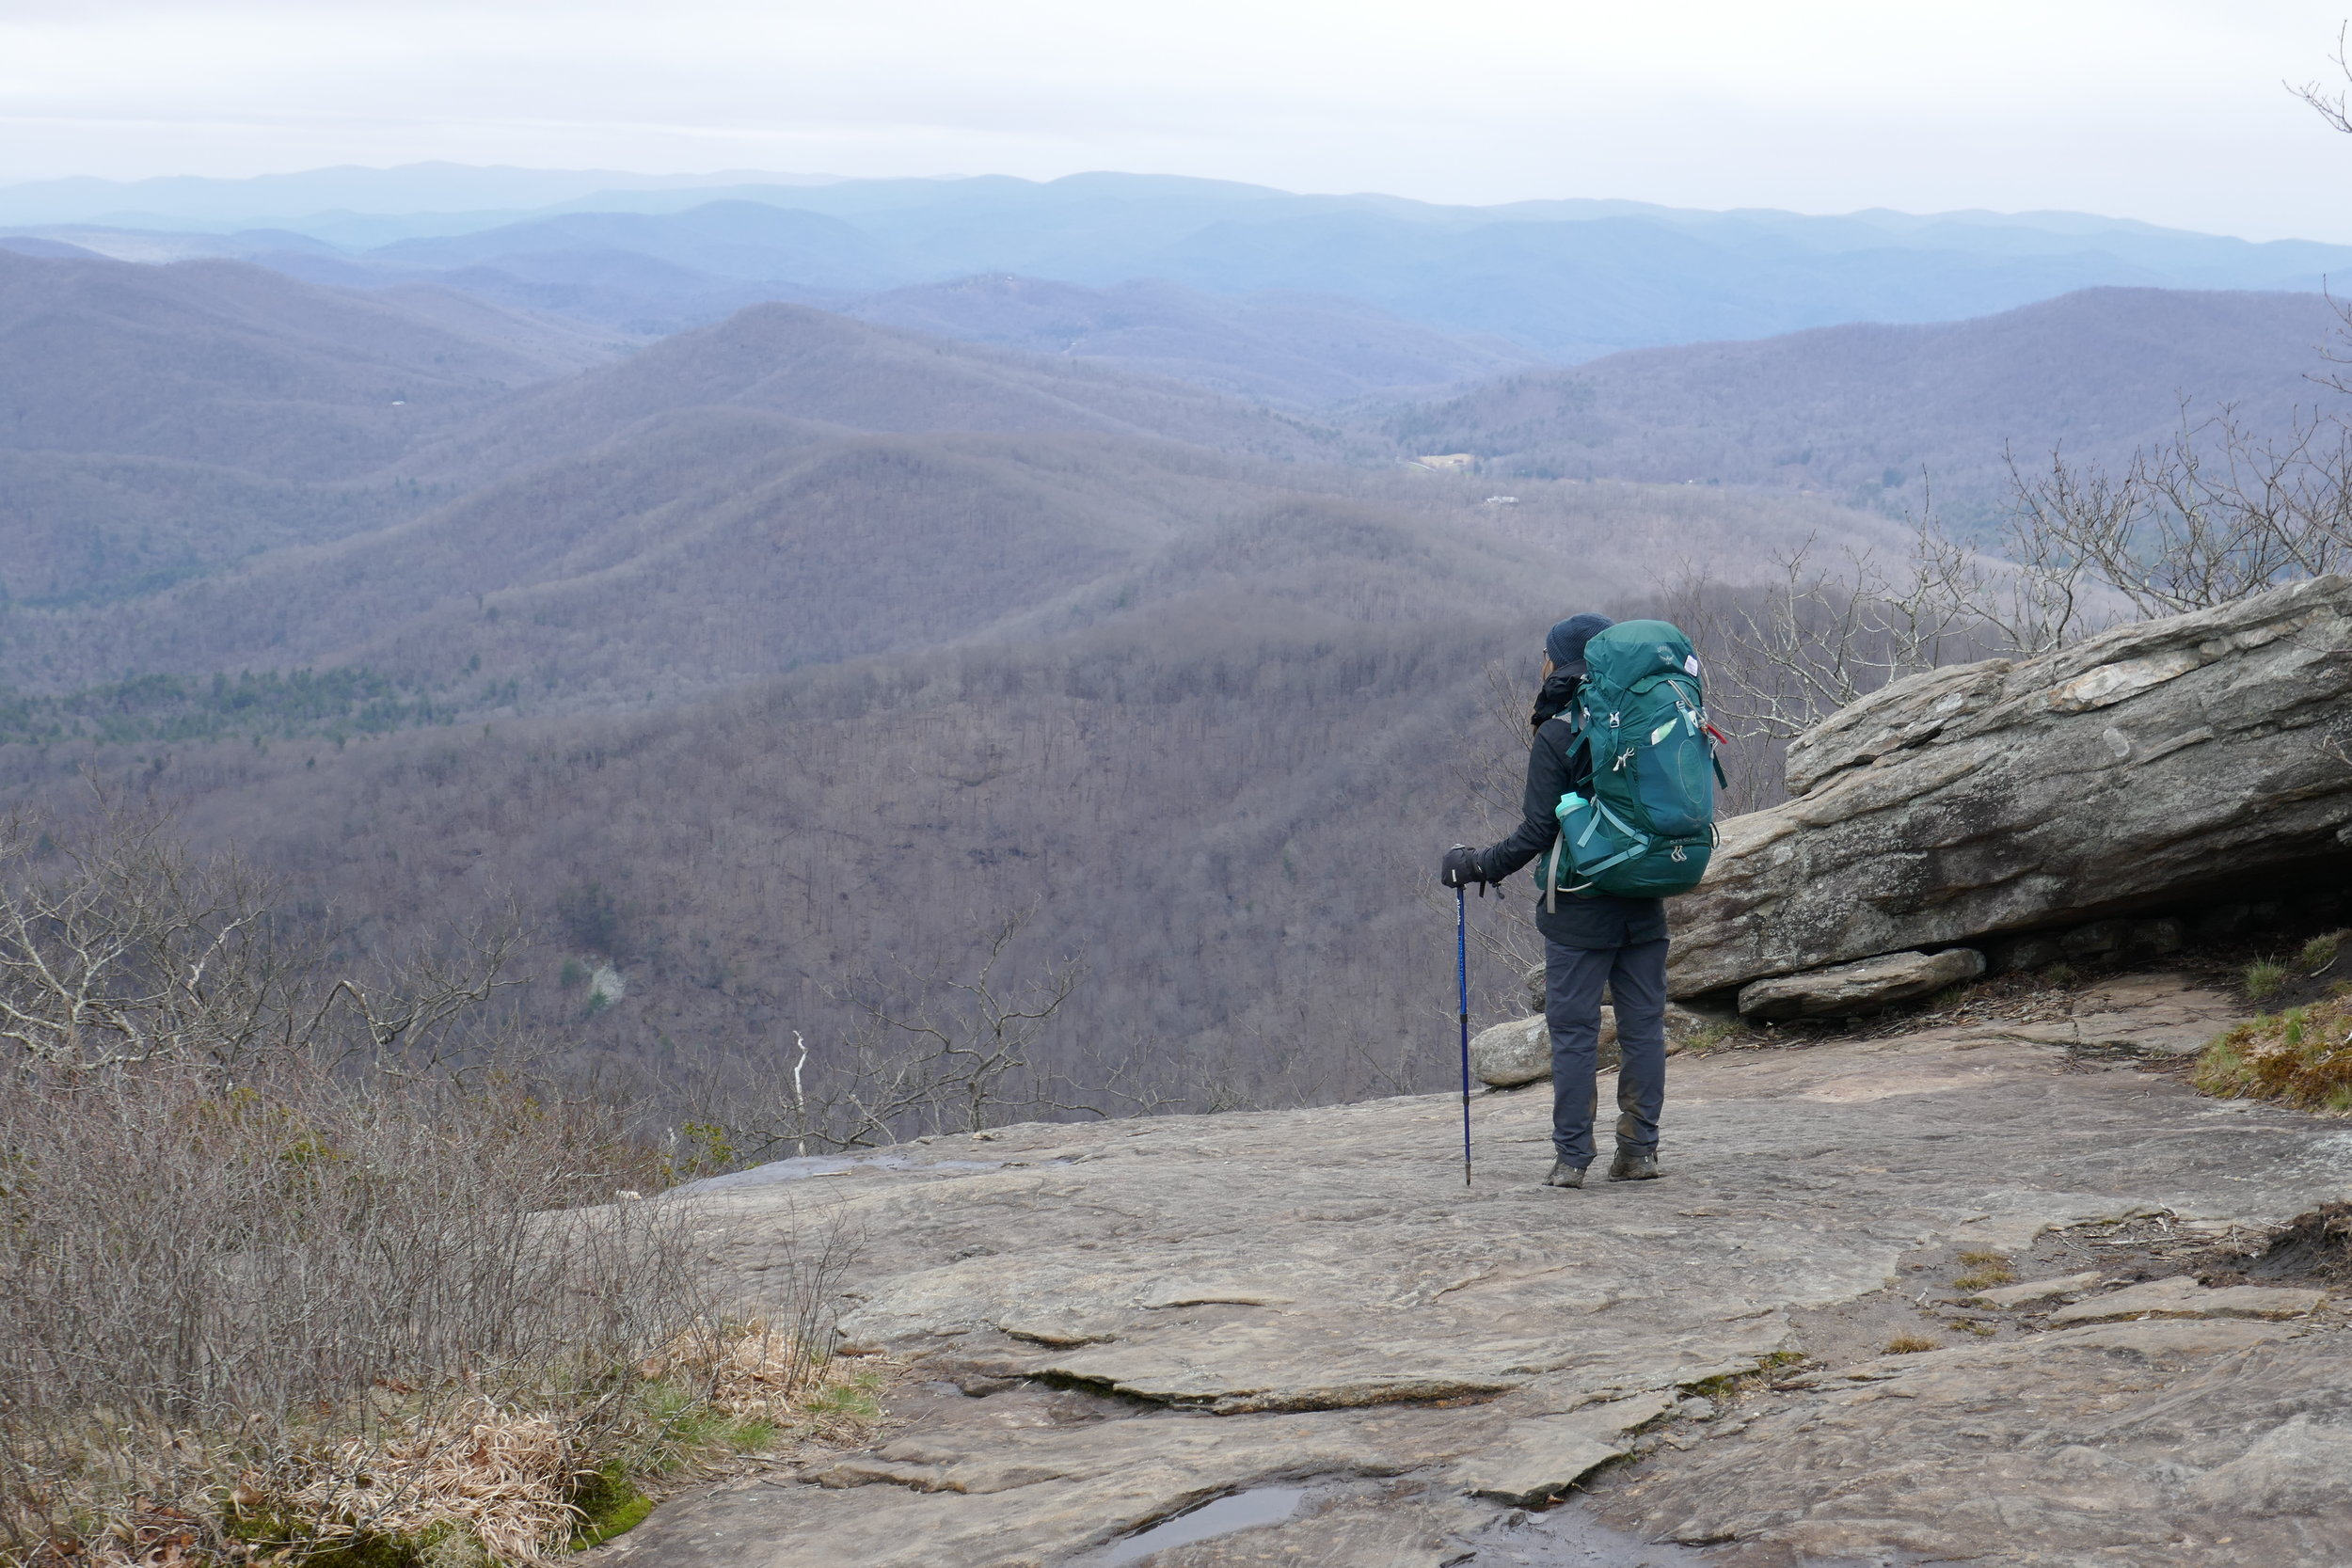 Eurohike Expedition Anti-Shock Walking Pole review